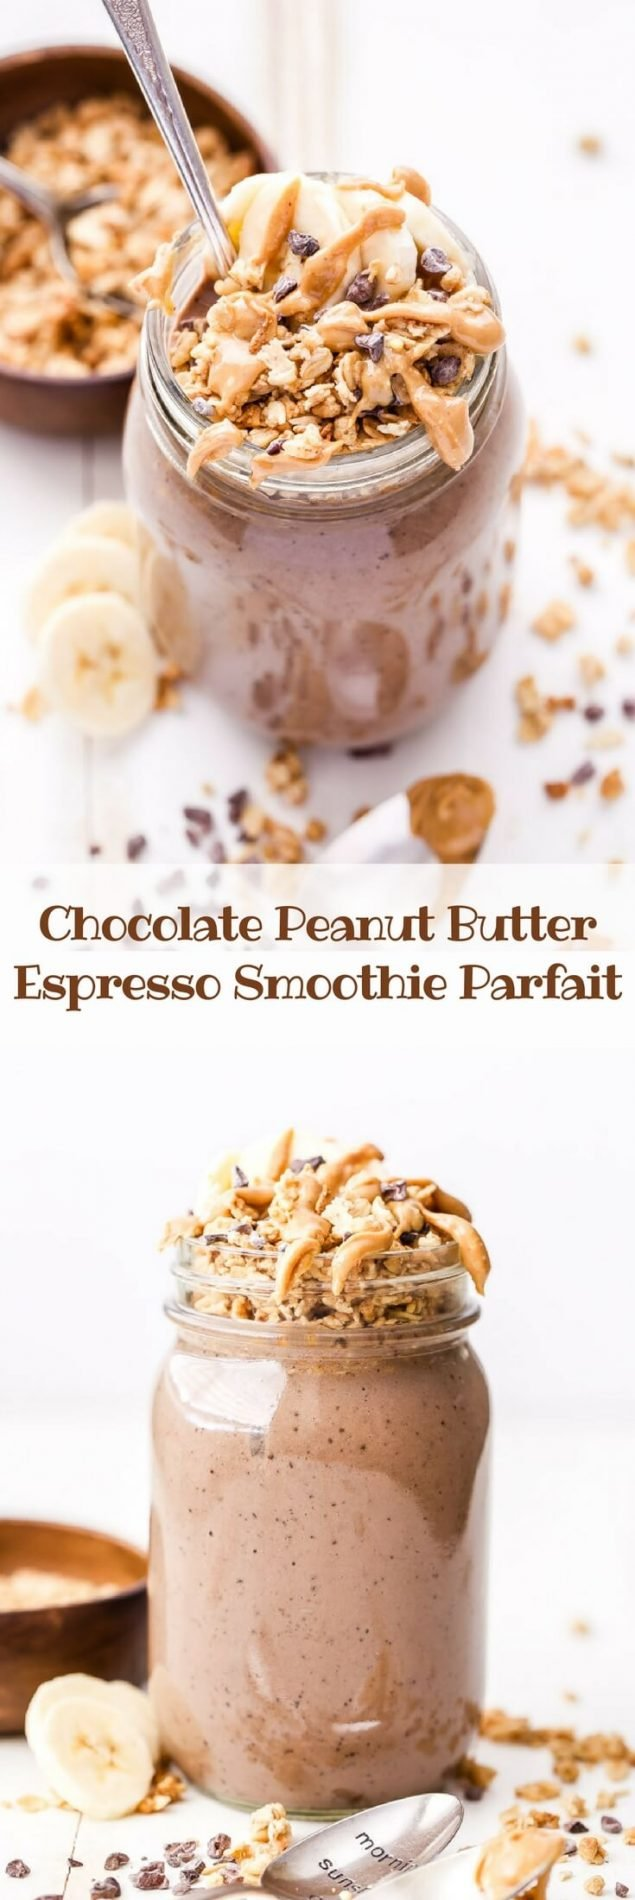 Chocolate Peanut Butter Espresso Smoothie Parfait is the solution for people who love to drink smoothies, but want something to eat too. Swirl in the granola and eat it with a spoon or drink it with a straw and save the crunch for the end! #chocolate #peanutbutter #smoothie #espresso #breakfast #glutenfree